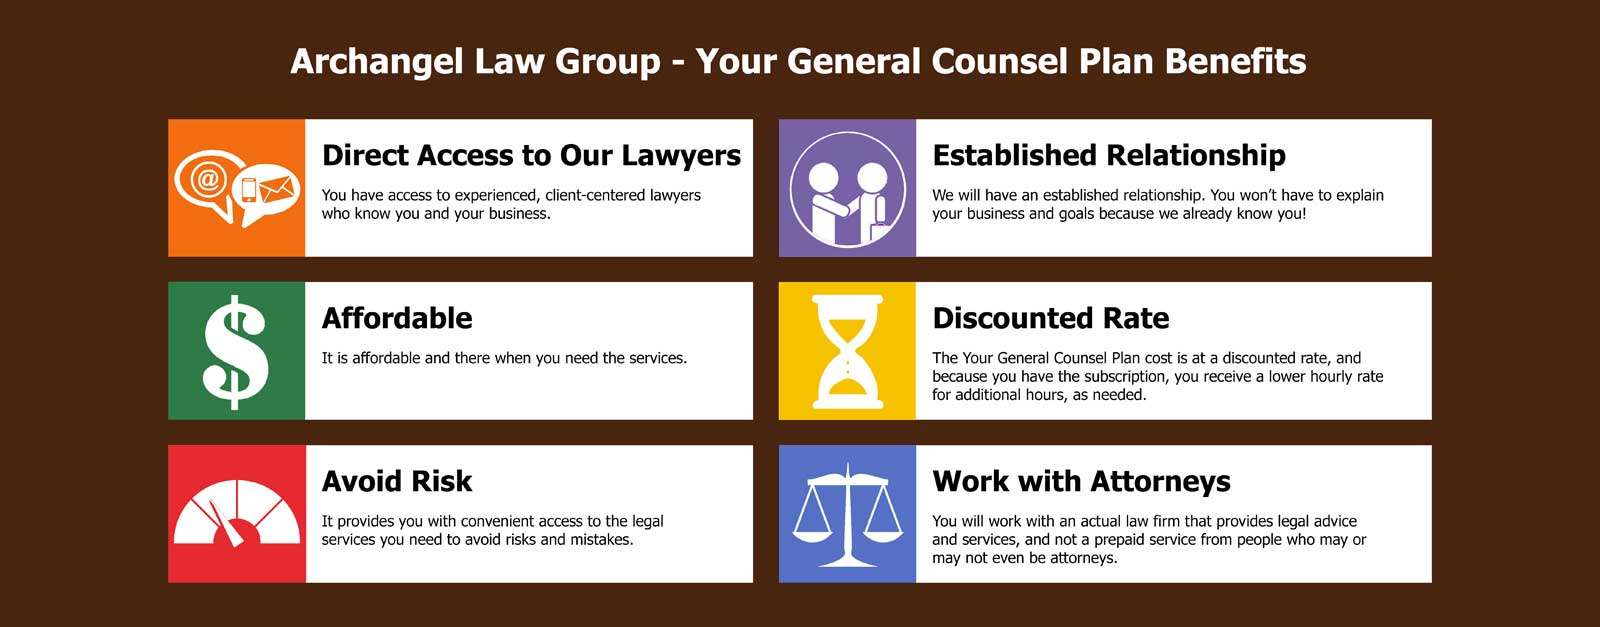 Archangel Law Group's Legal Subscription Service graphic showing the benefits